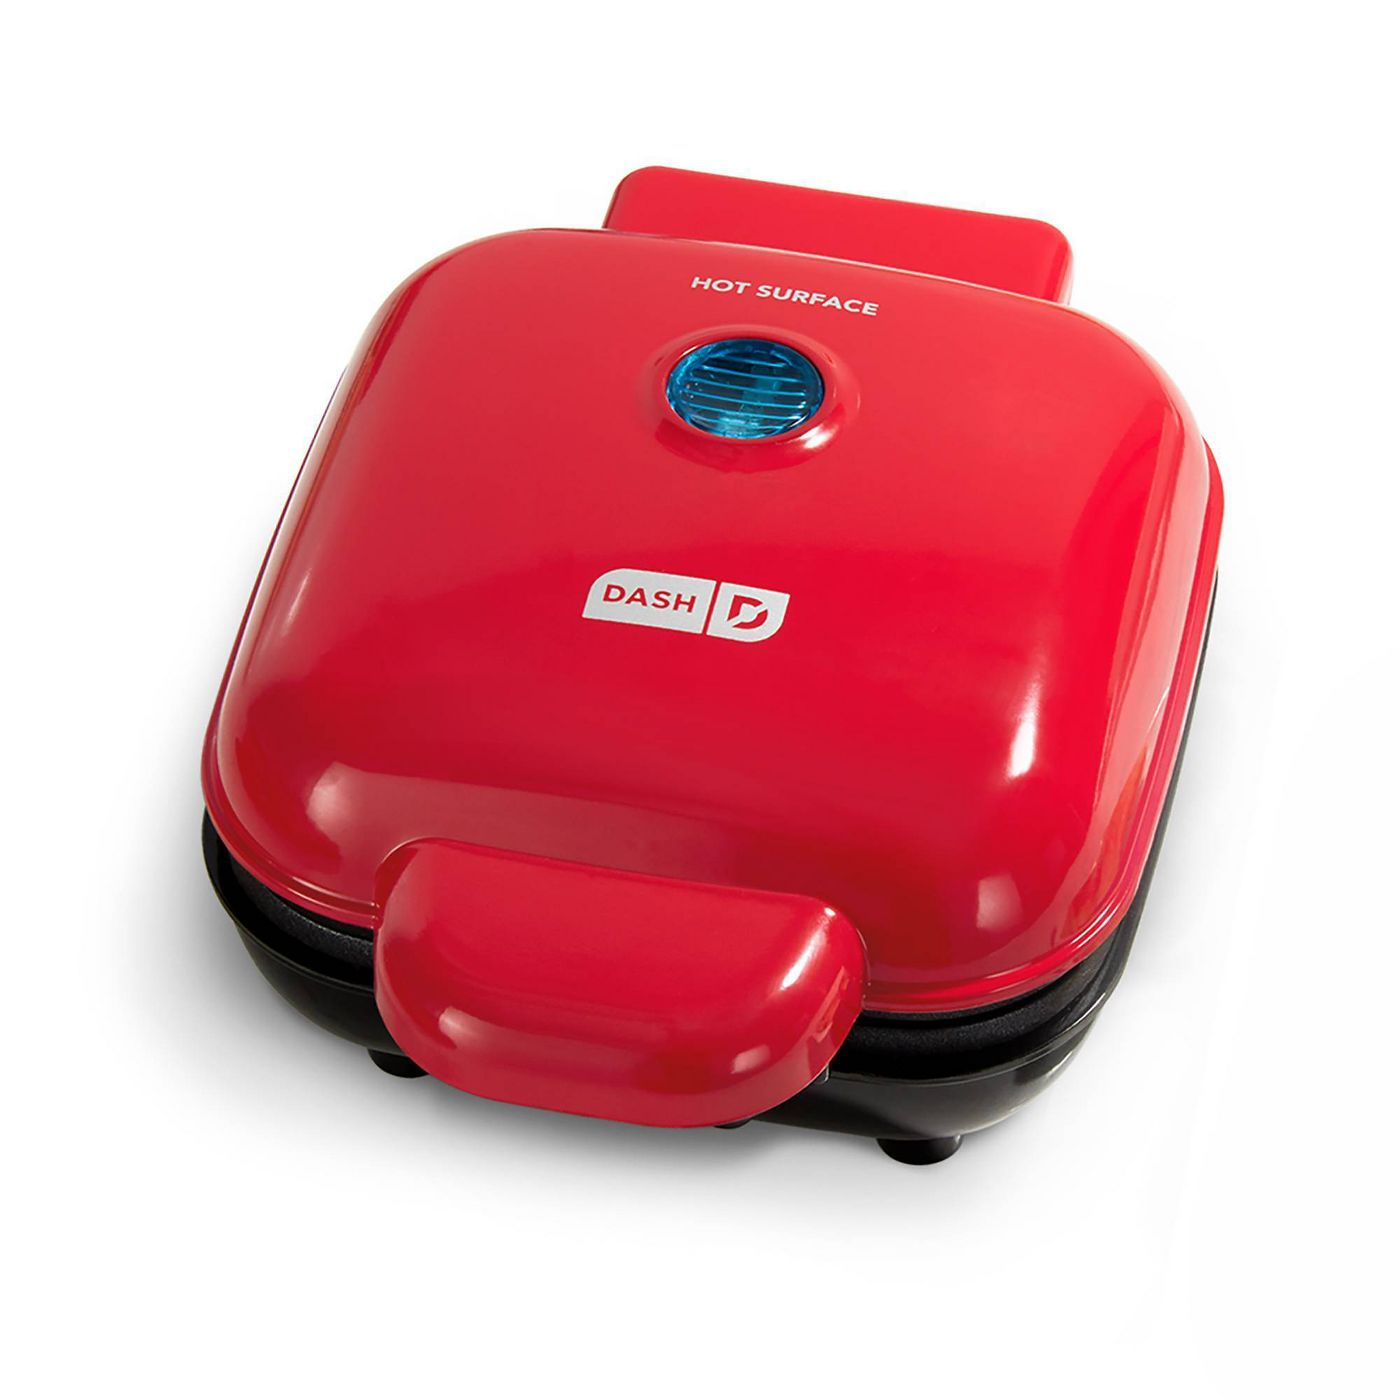 Dash Express Pocket Sandwich Maker for paninis at a great price